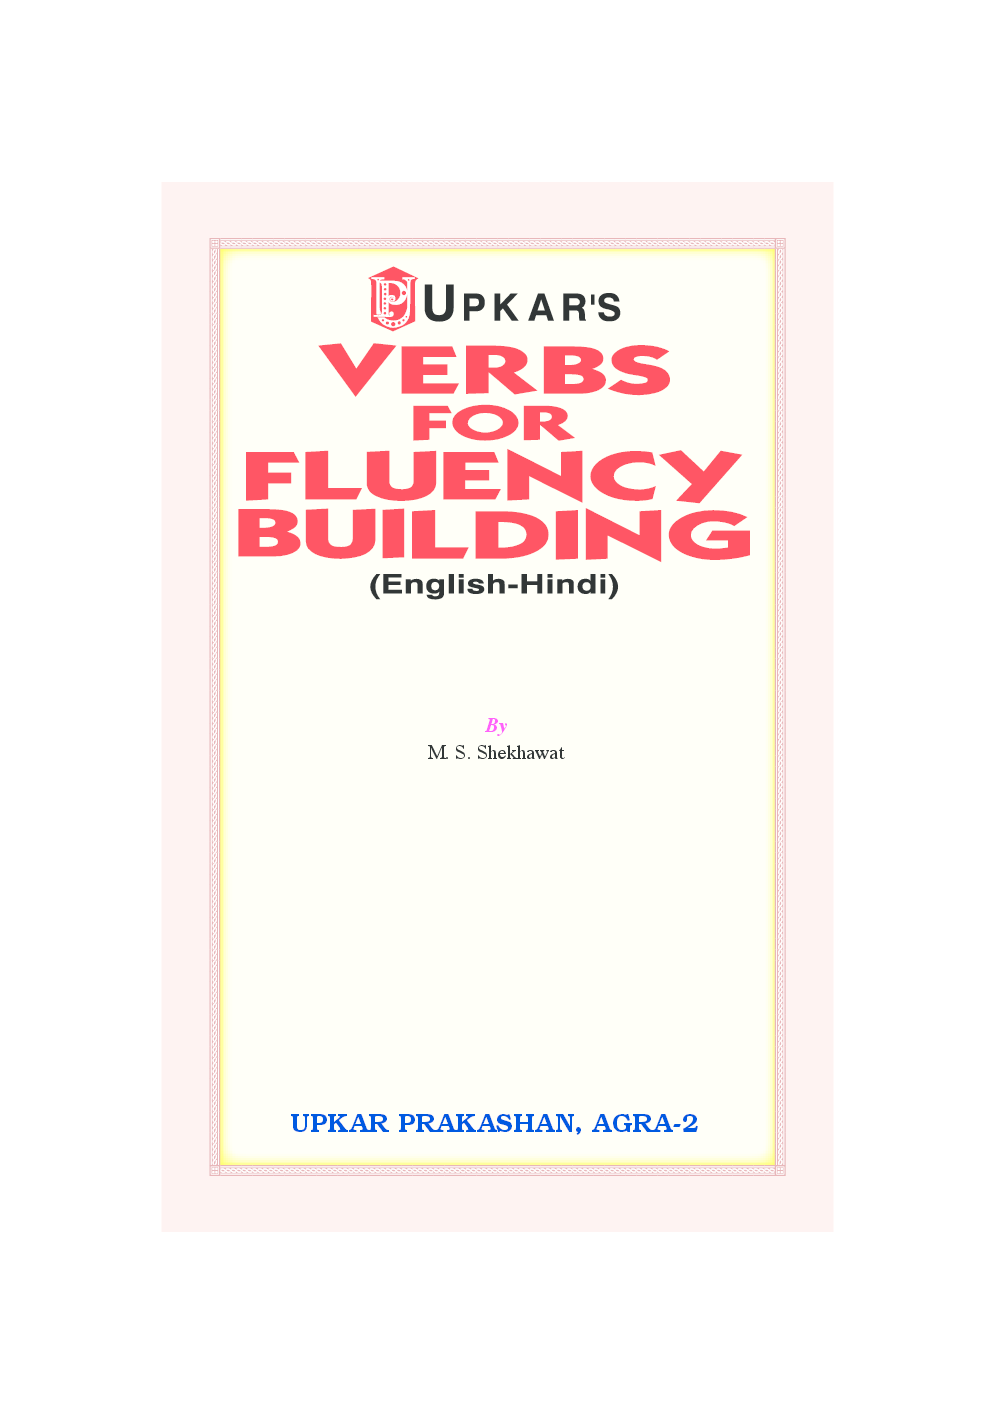 Verbs for Fluency Building (Eng.-Hindi) - Page 2